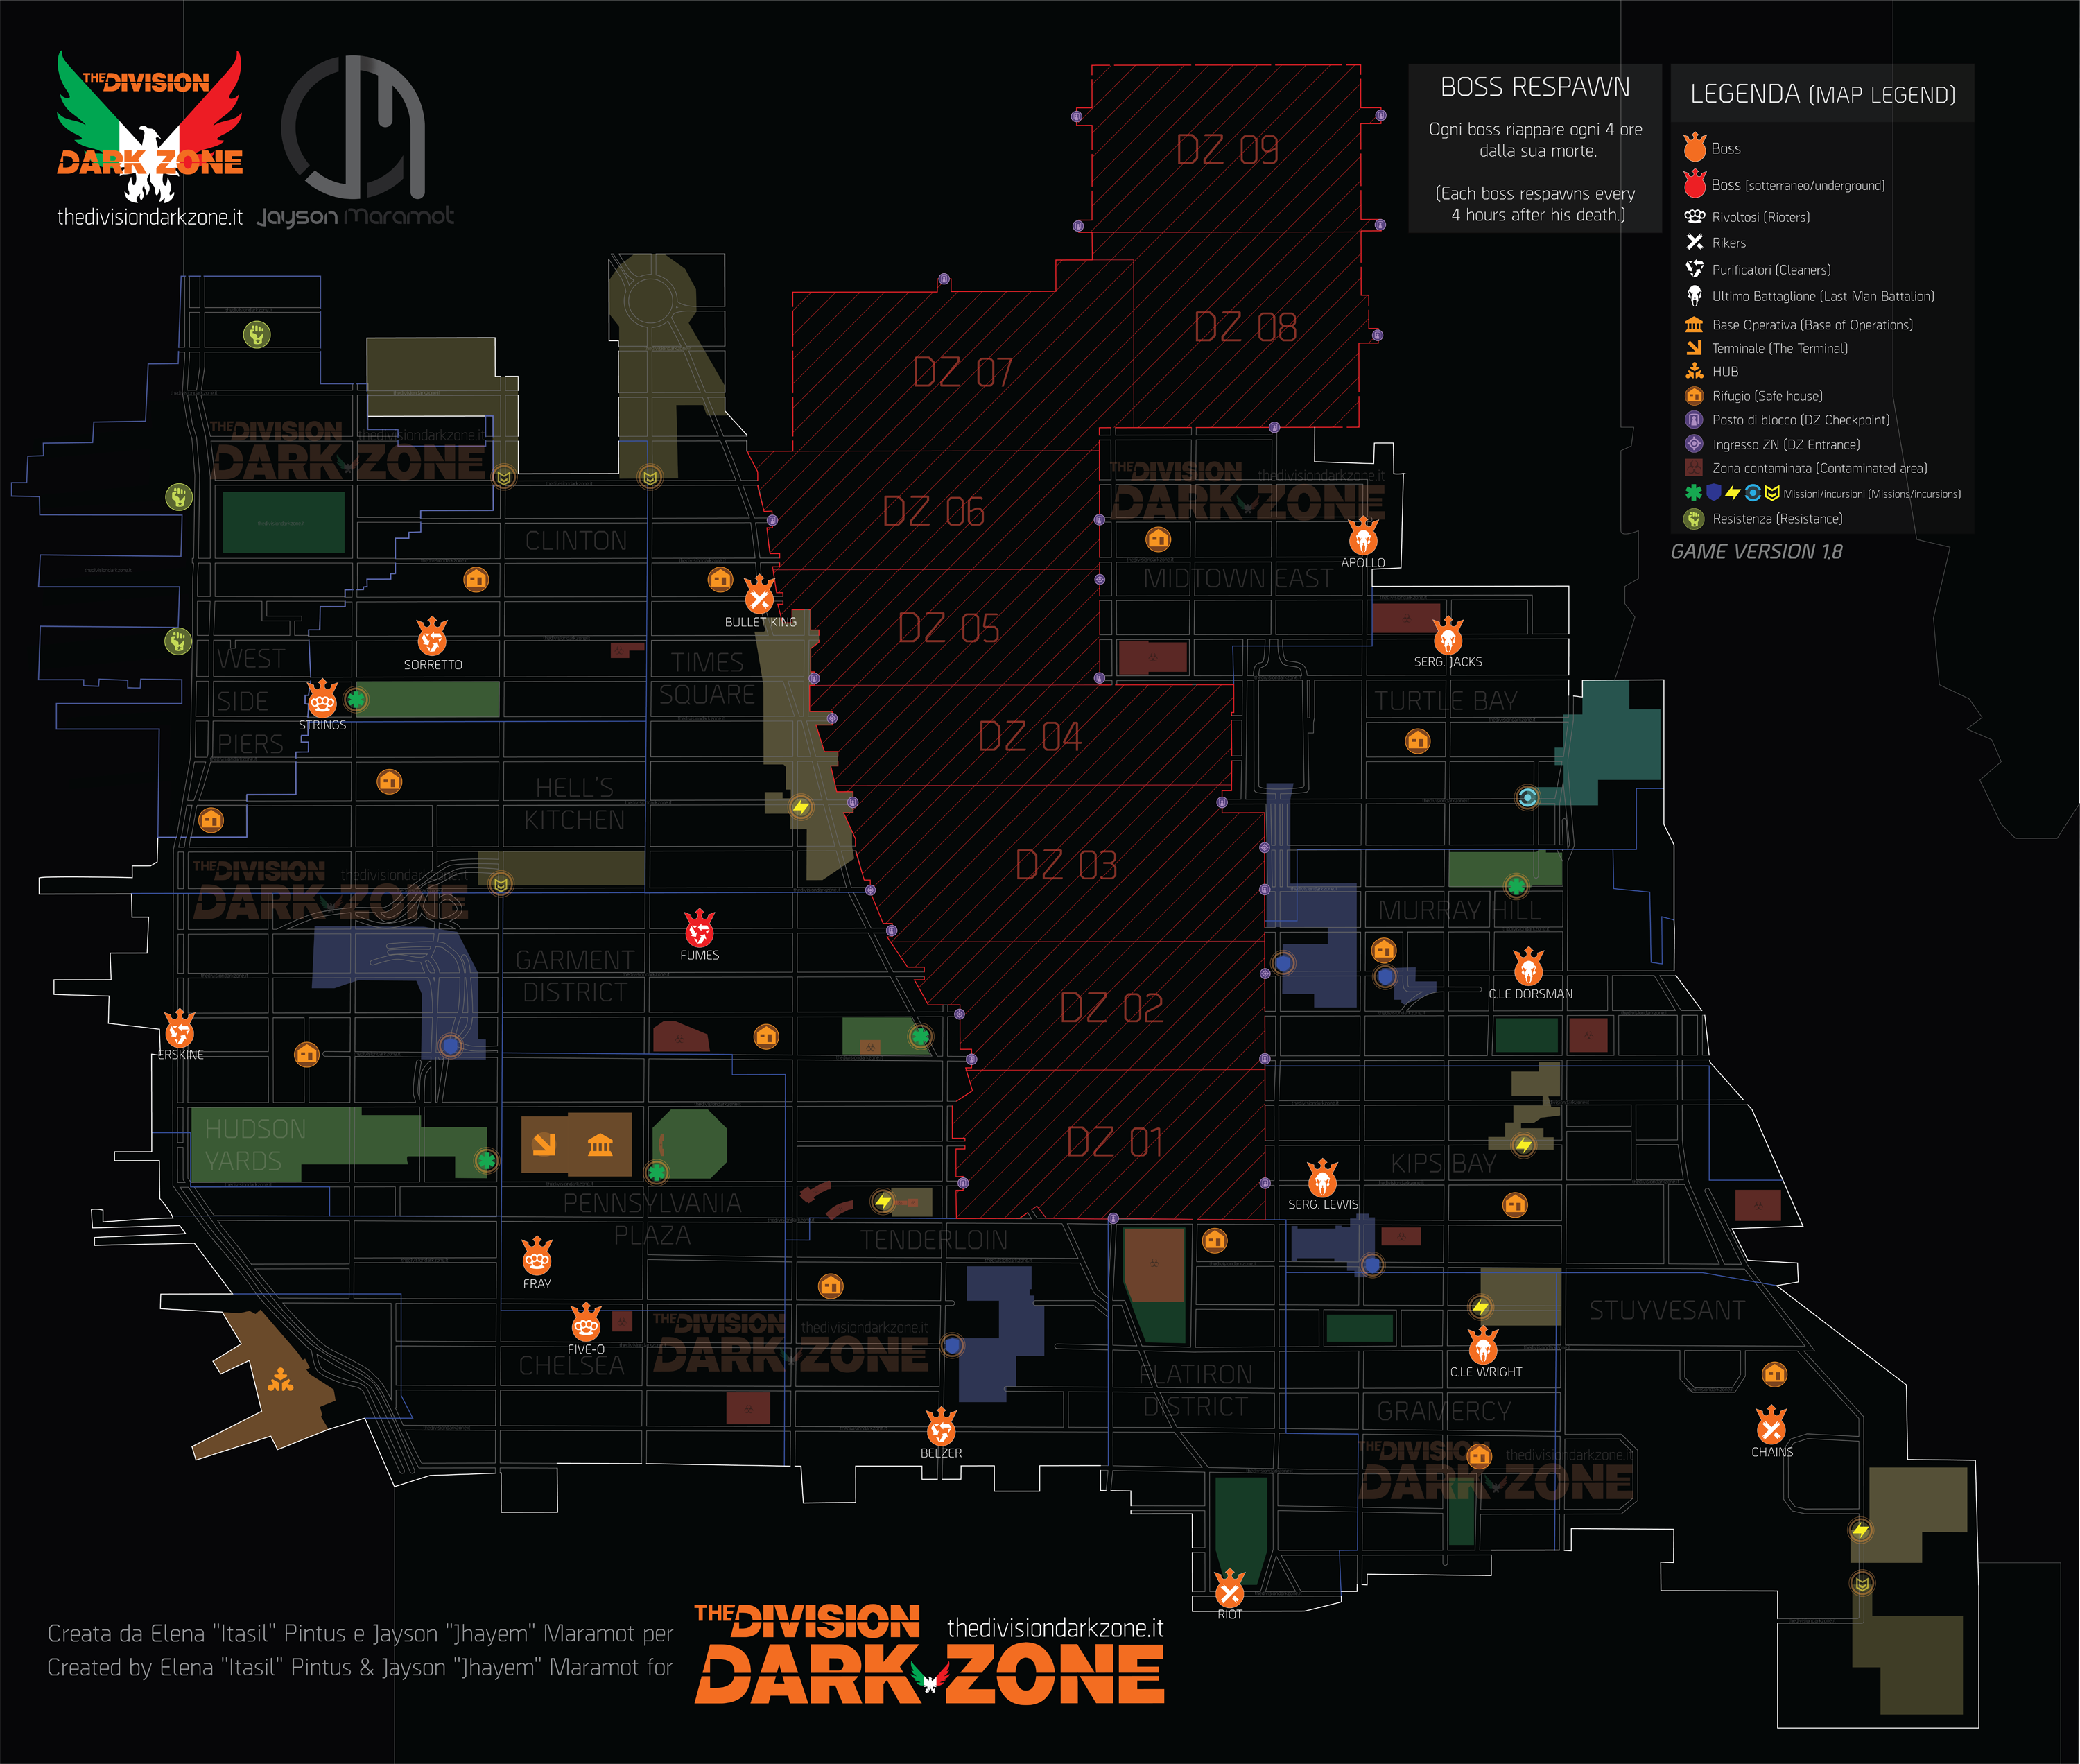 the division 2 dark zone edition reddit